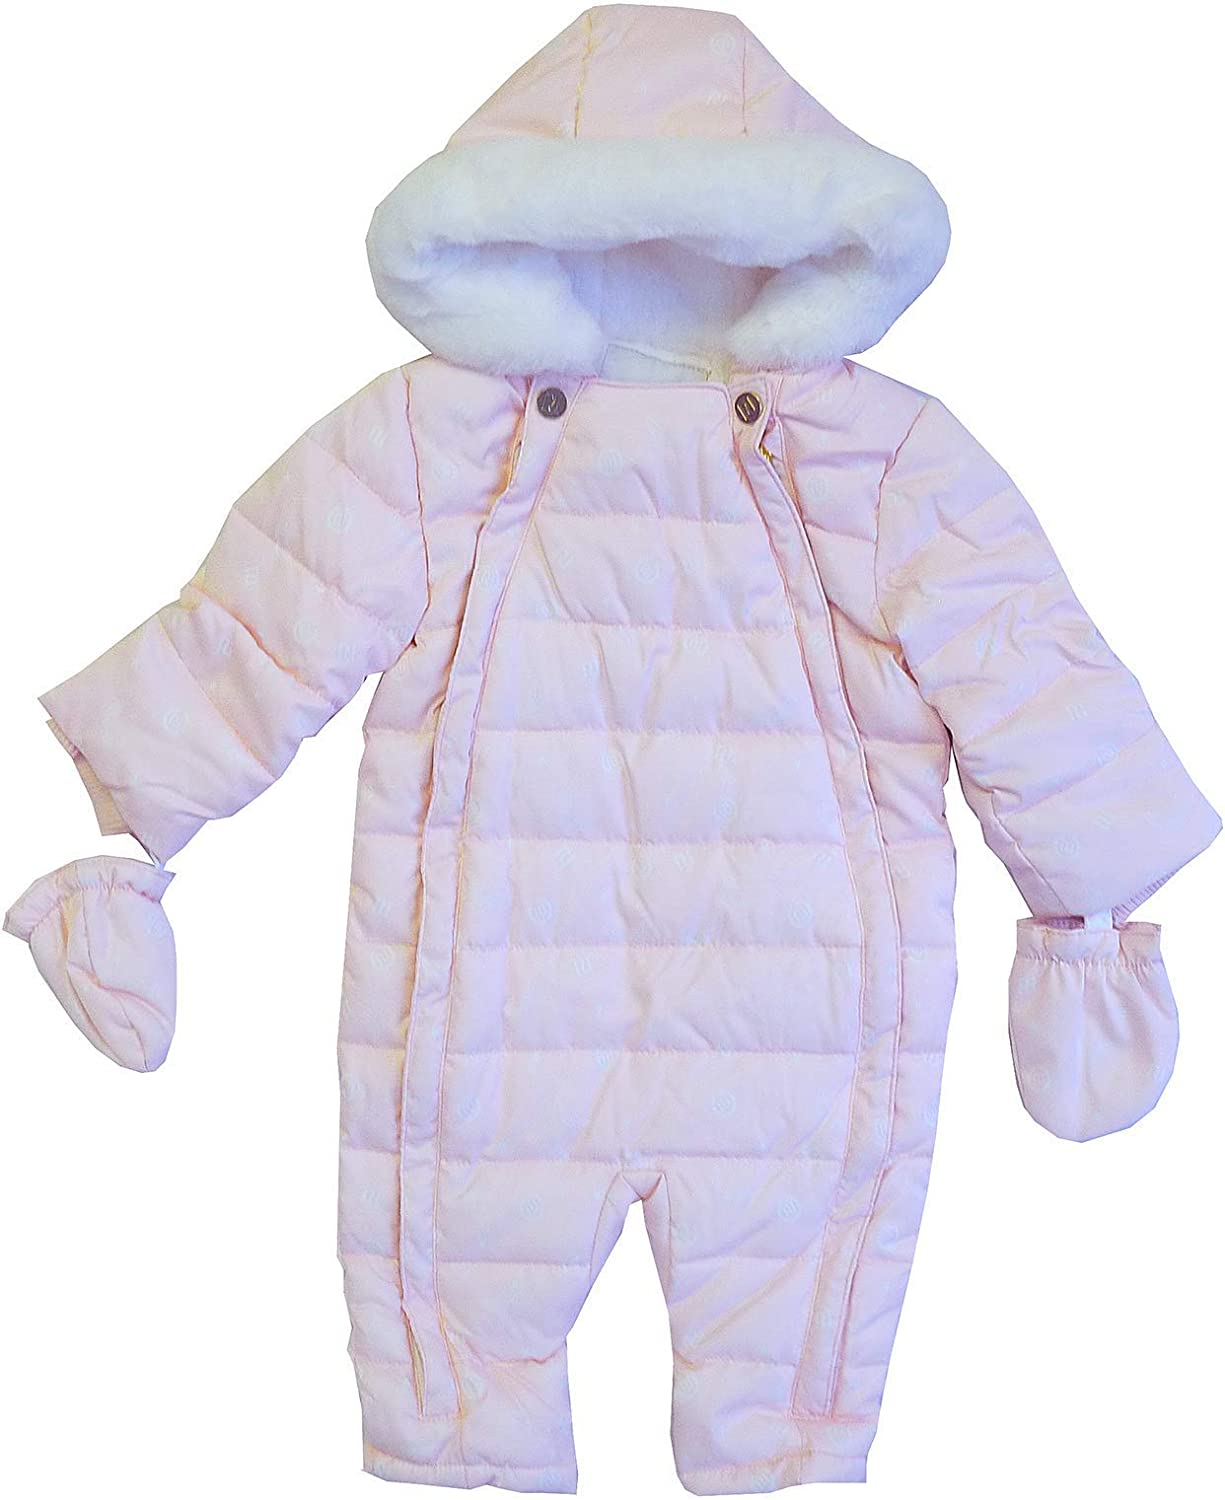 Get Wivvit Baby Girls River Island Pink Pramsuit Hooded Snowsuit Coat Sizes  from Newborn to 7 Months